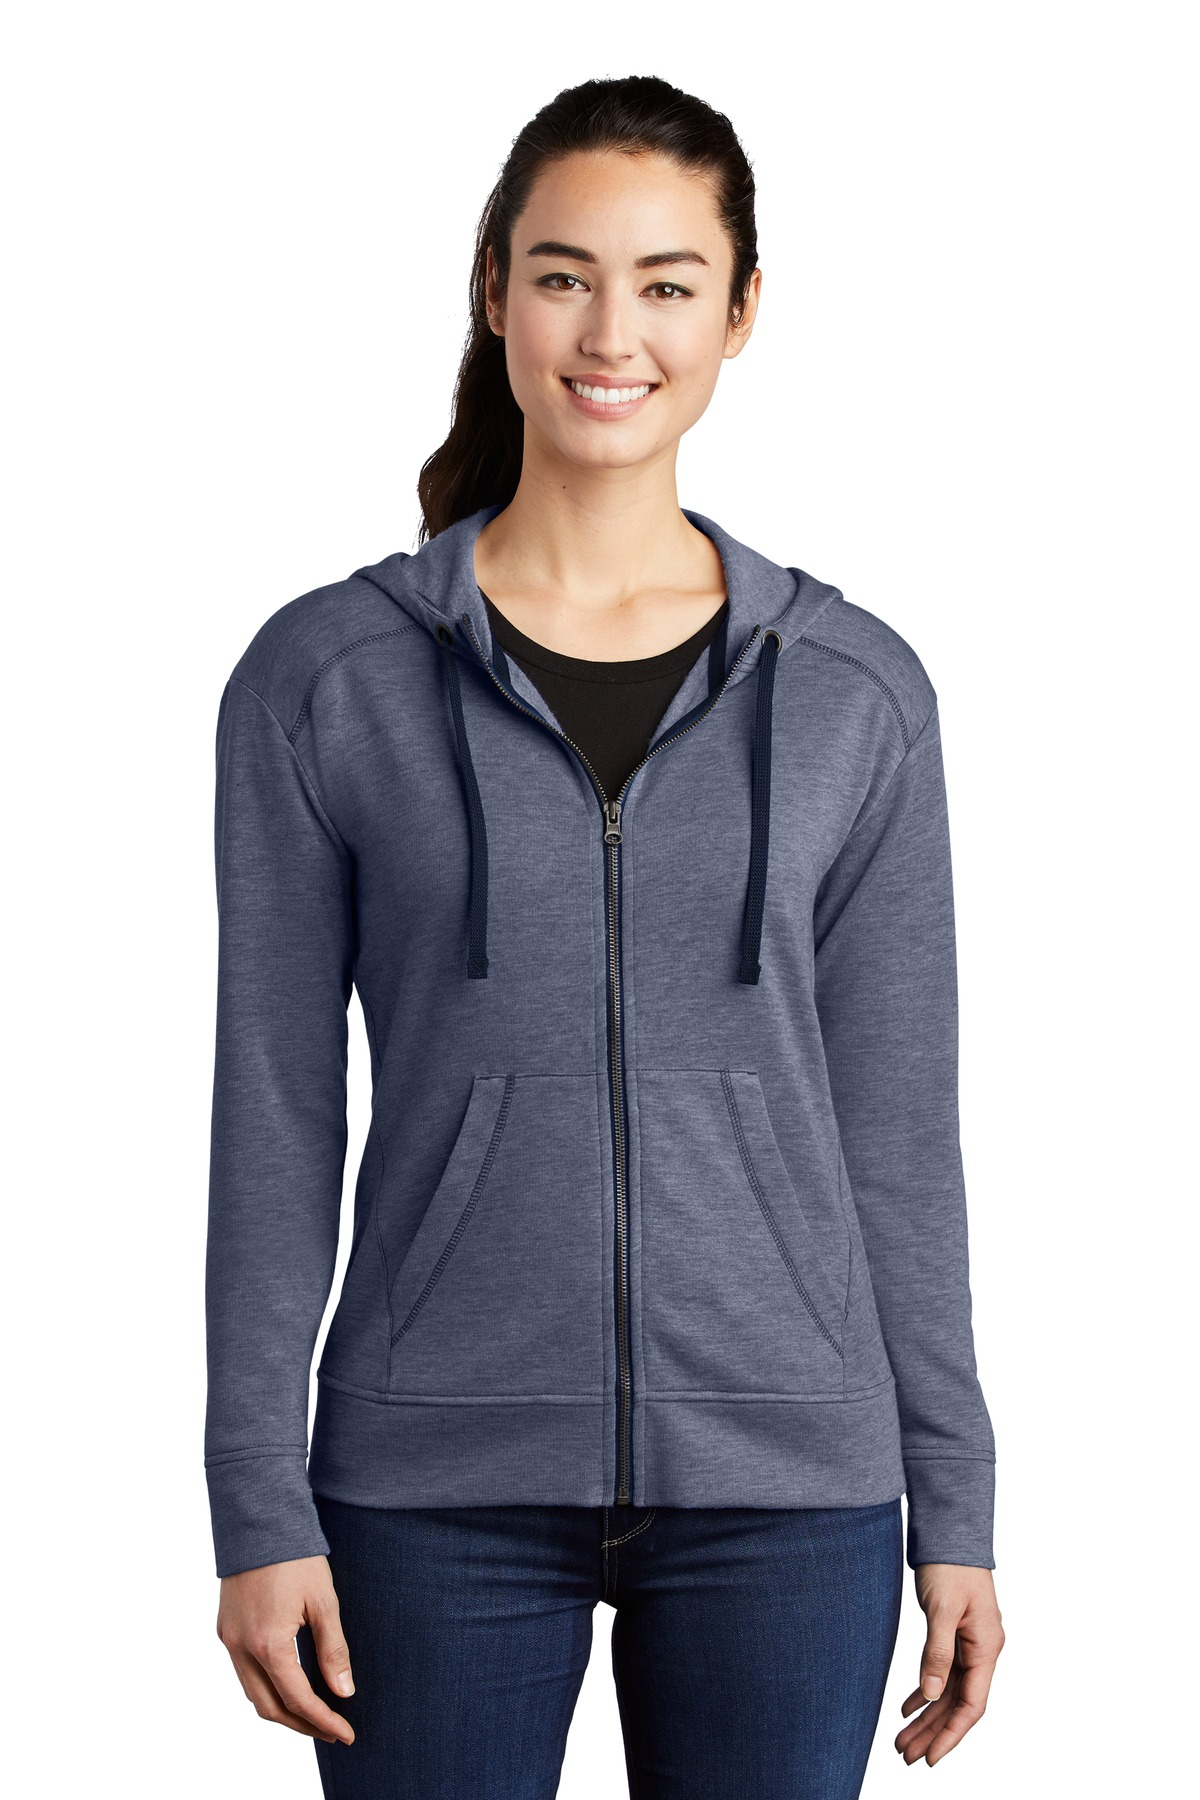 Sport-Tek Ladies PosiCharge Tri-Blend Wicking Fleece Full-Zip Hooded Jacket LST293